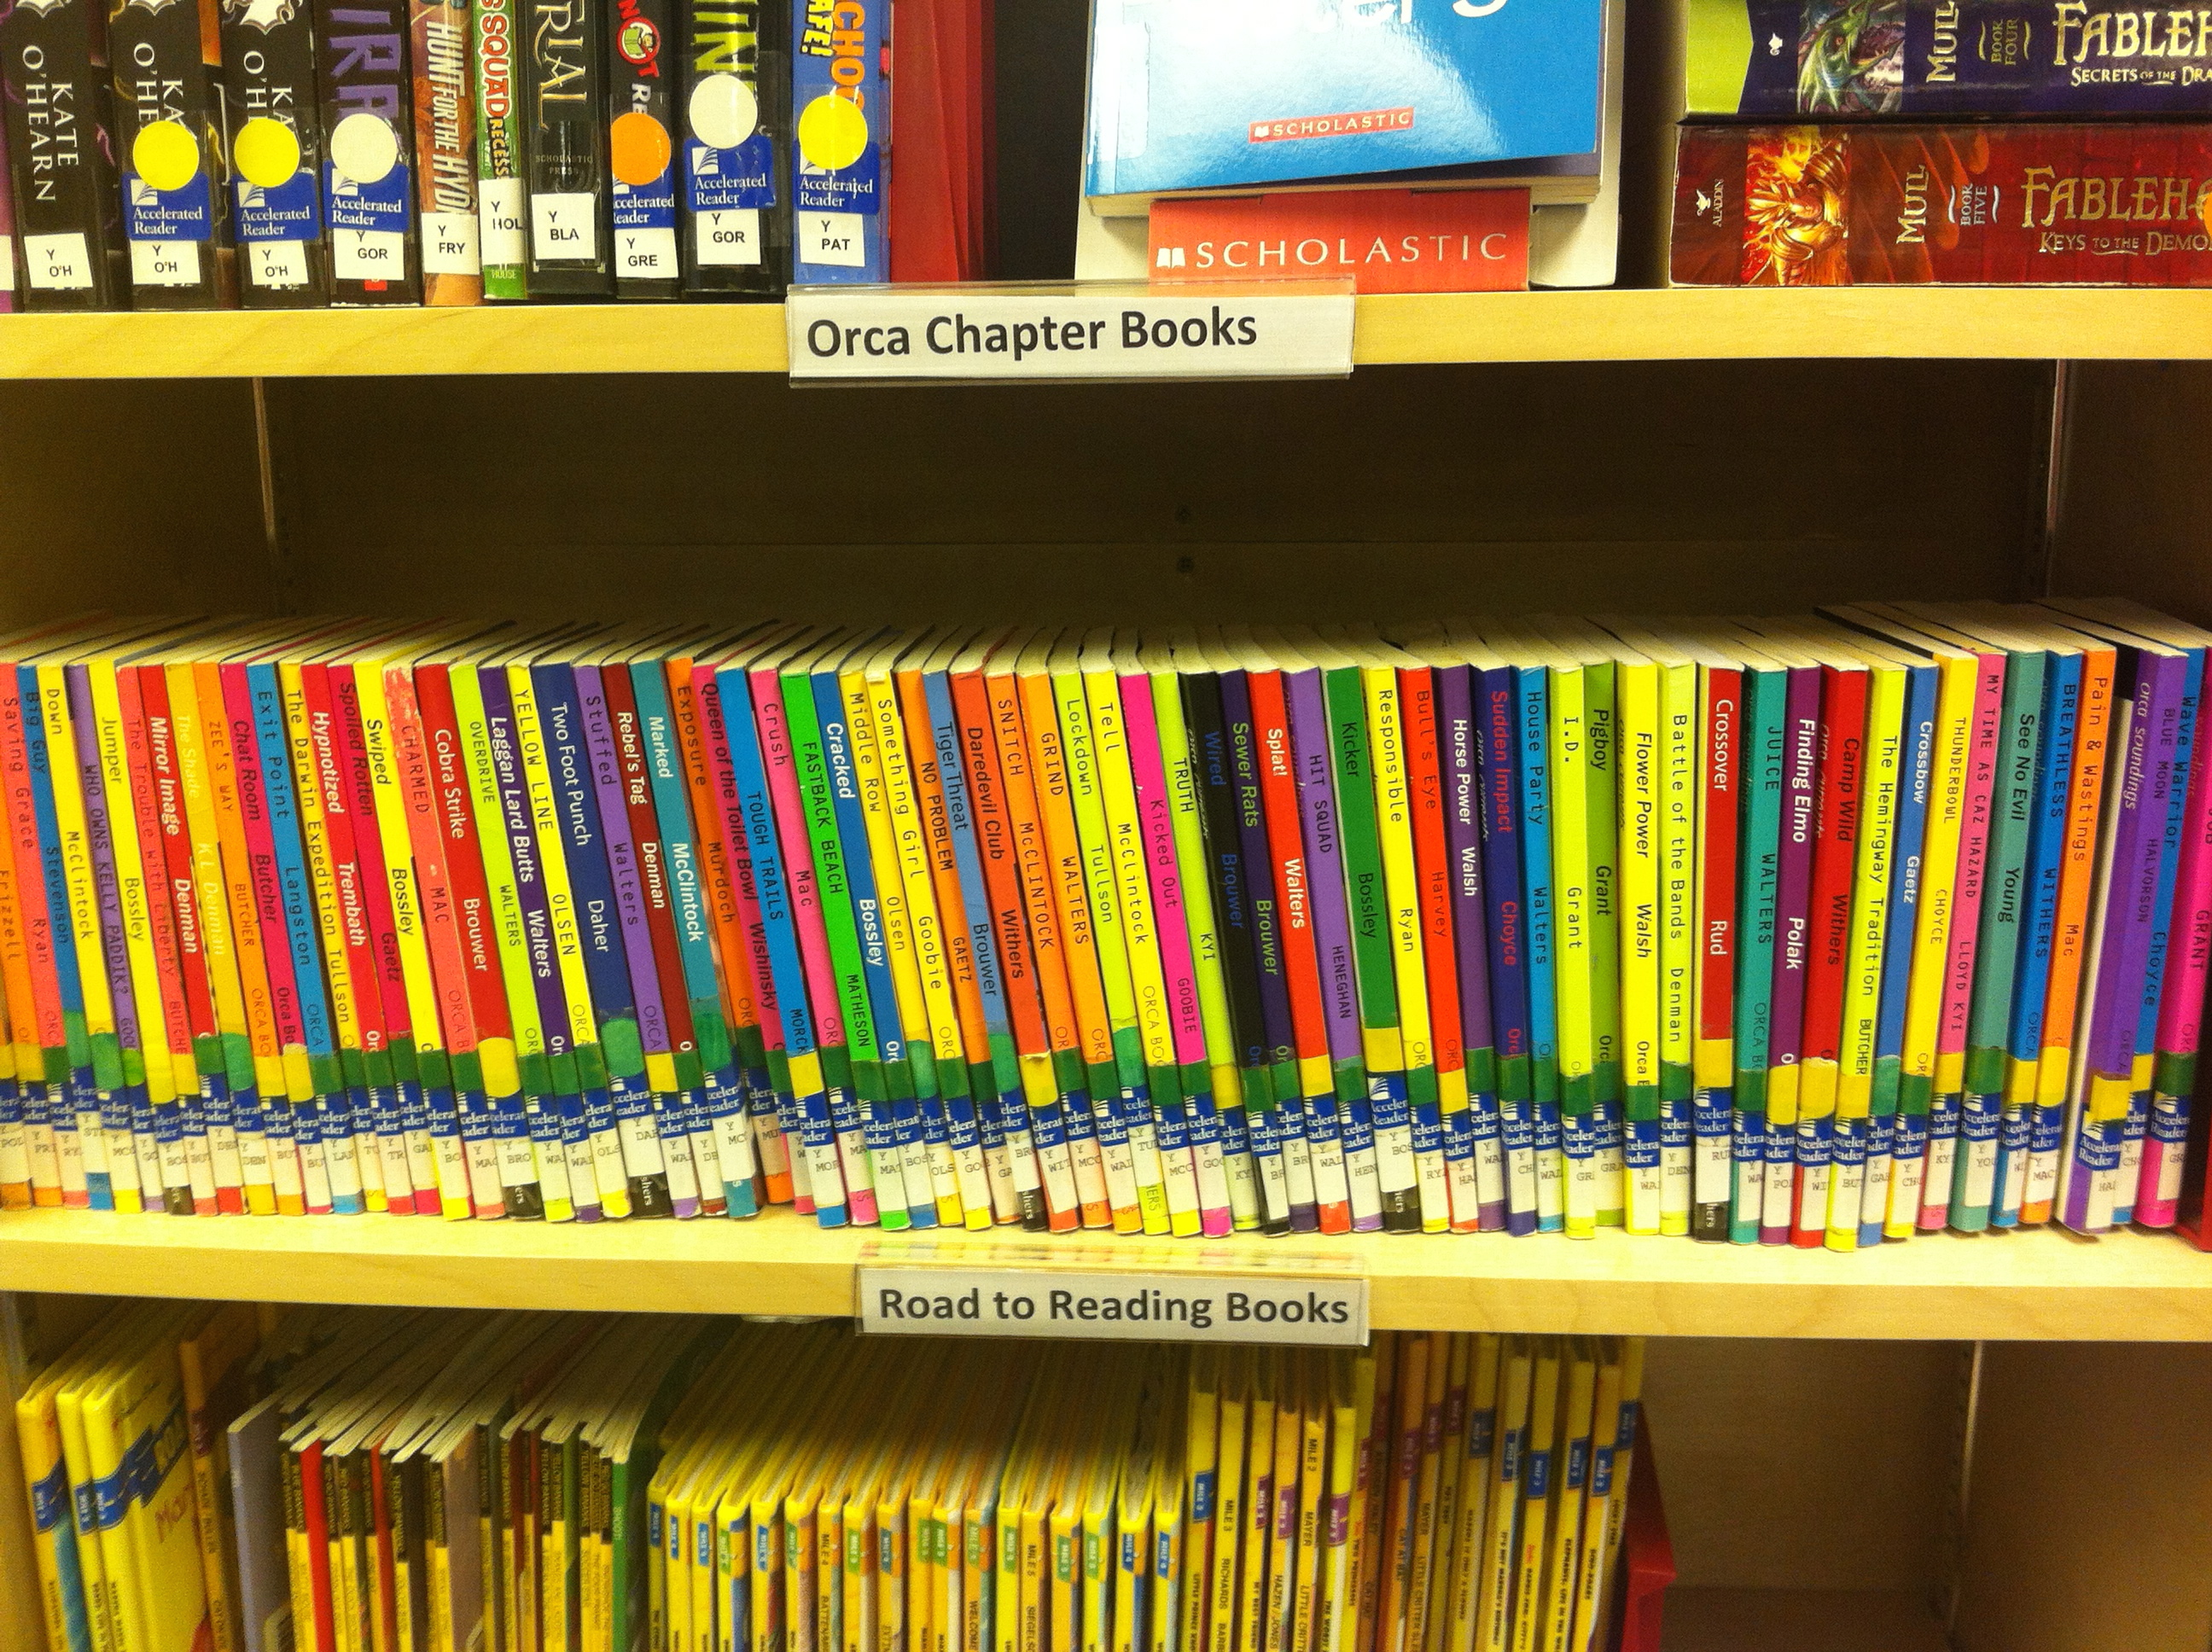 4b1a25aee6b How wonderful to see so many Orca titles at the library in Veteran!